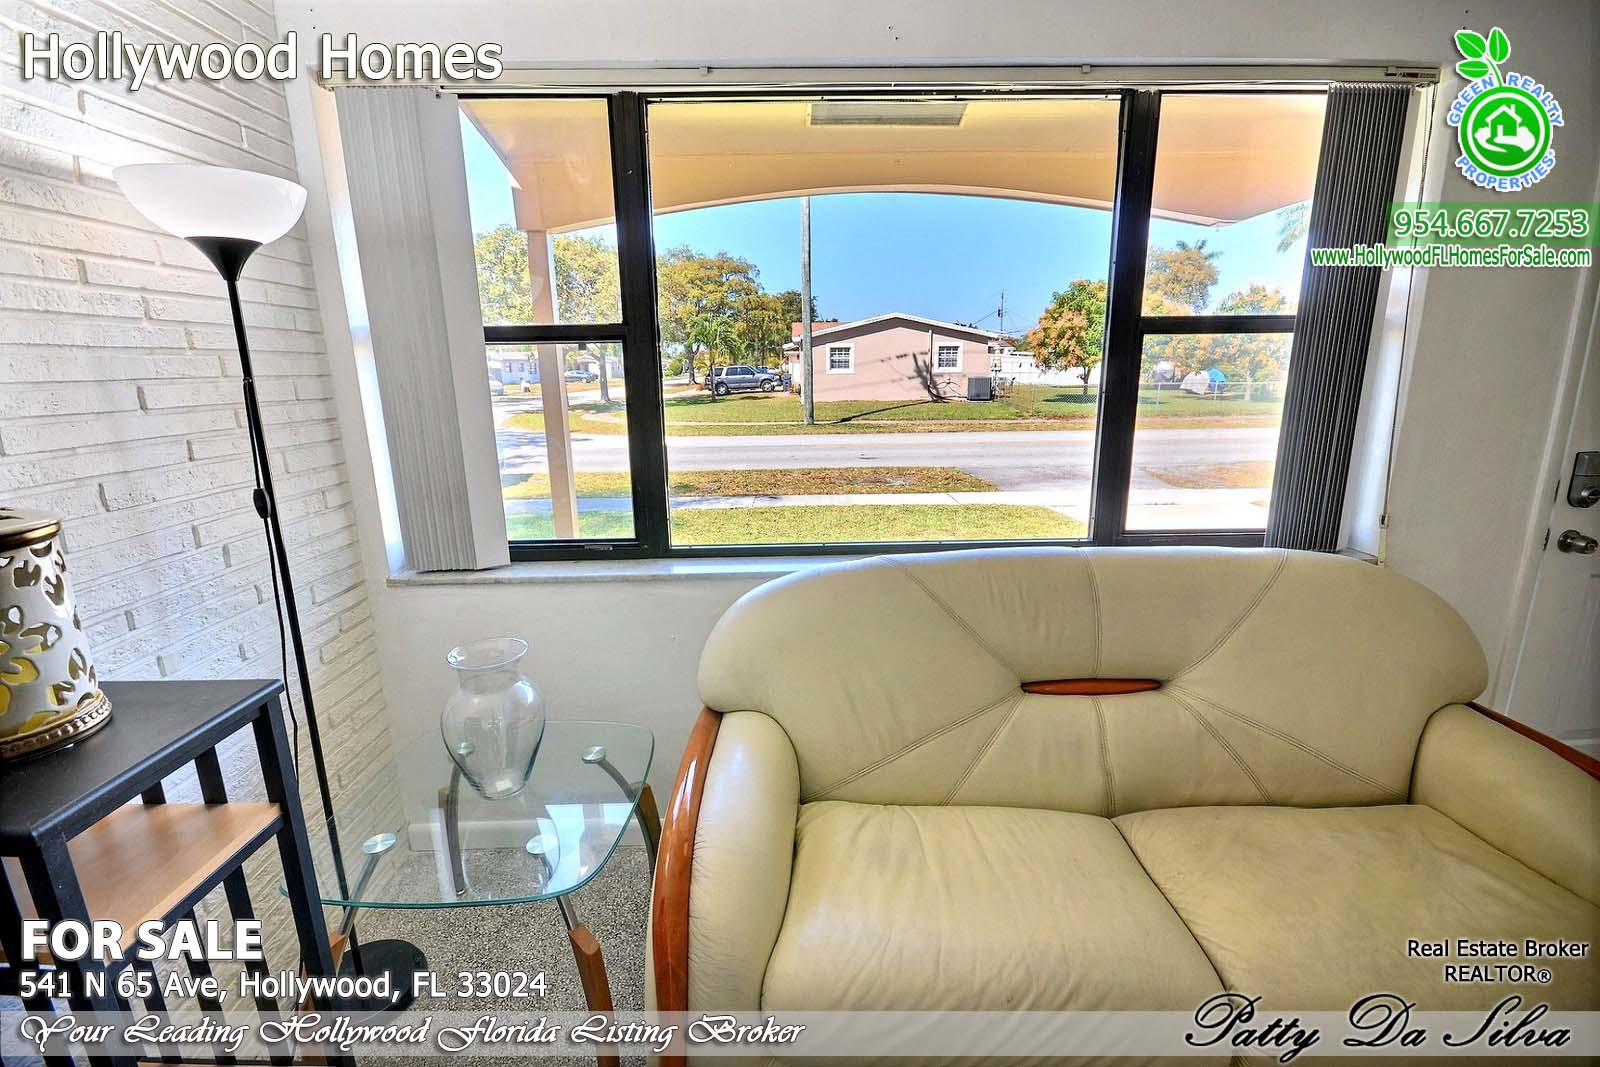 Homes For Sale in Hollywood Florida (20)